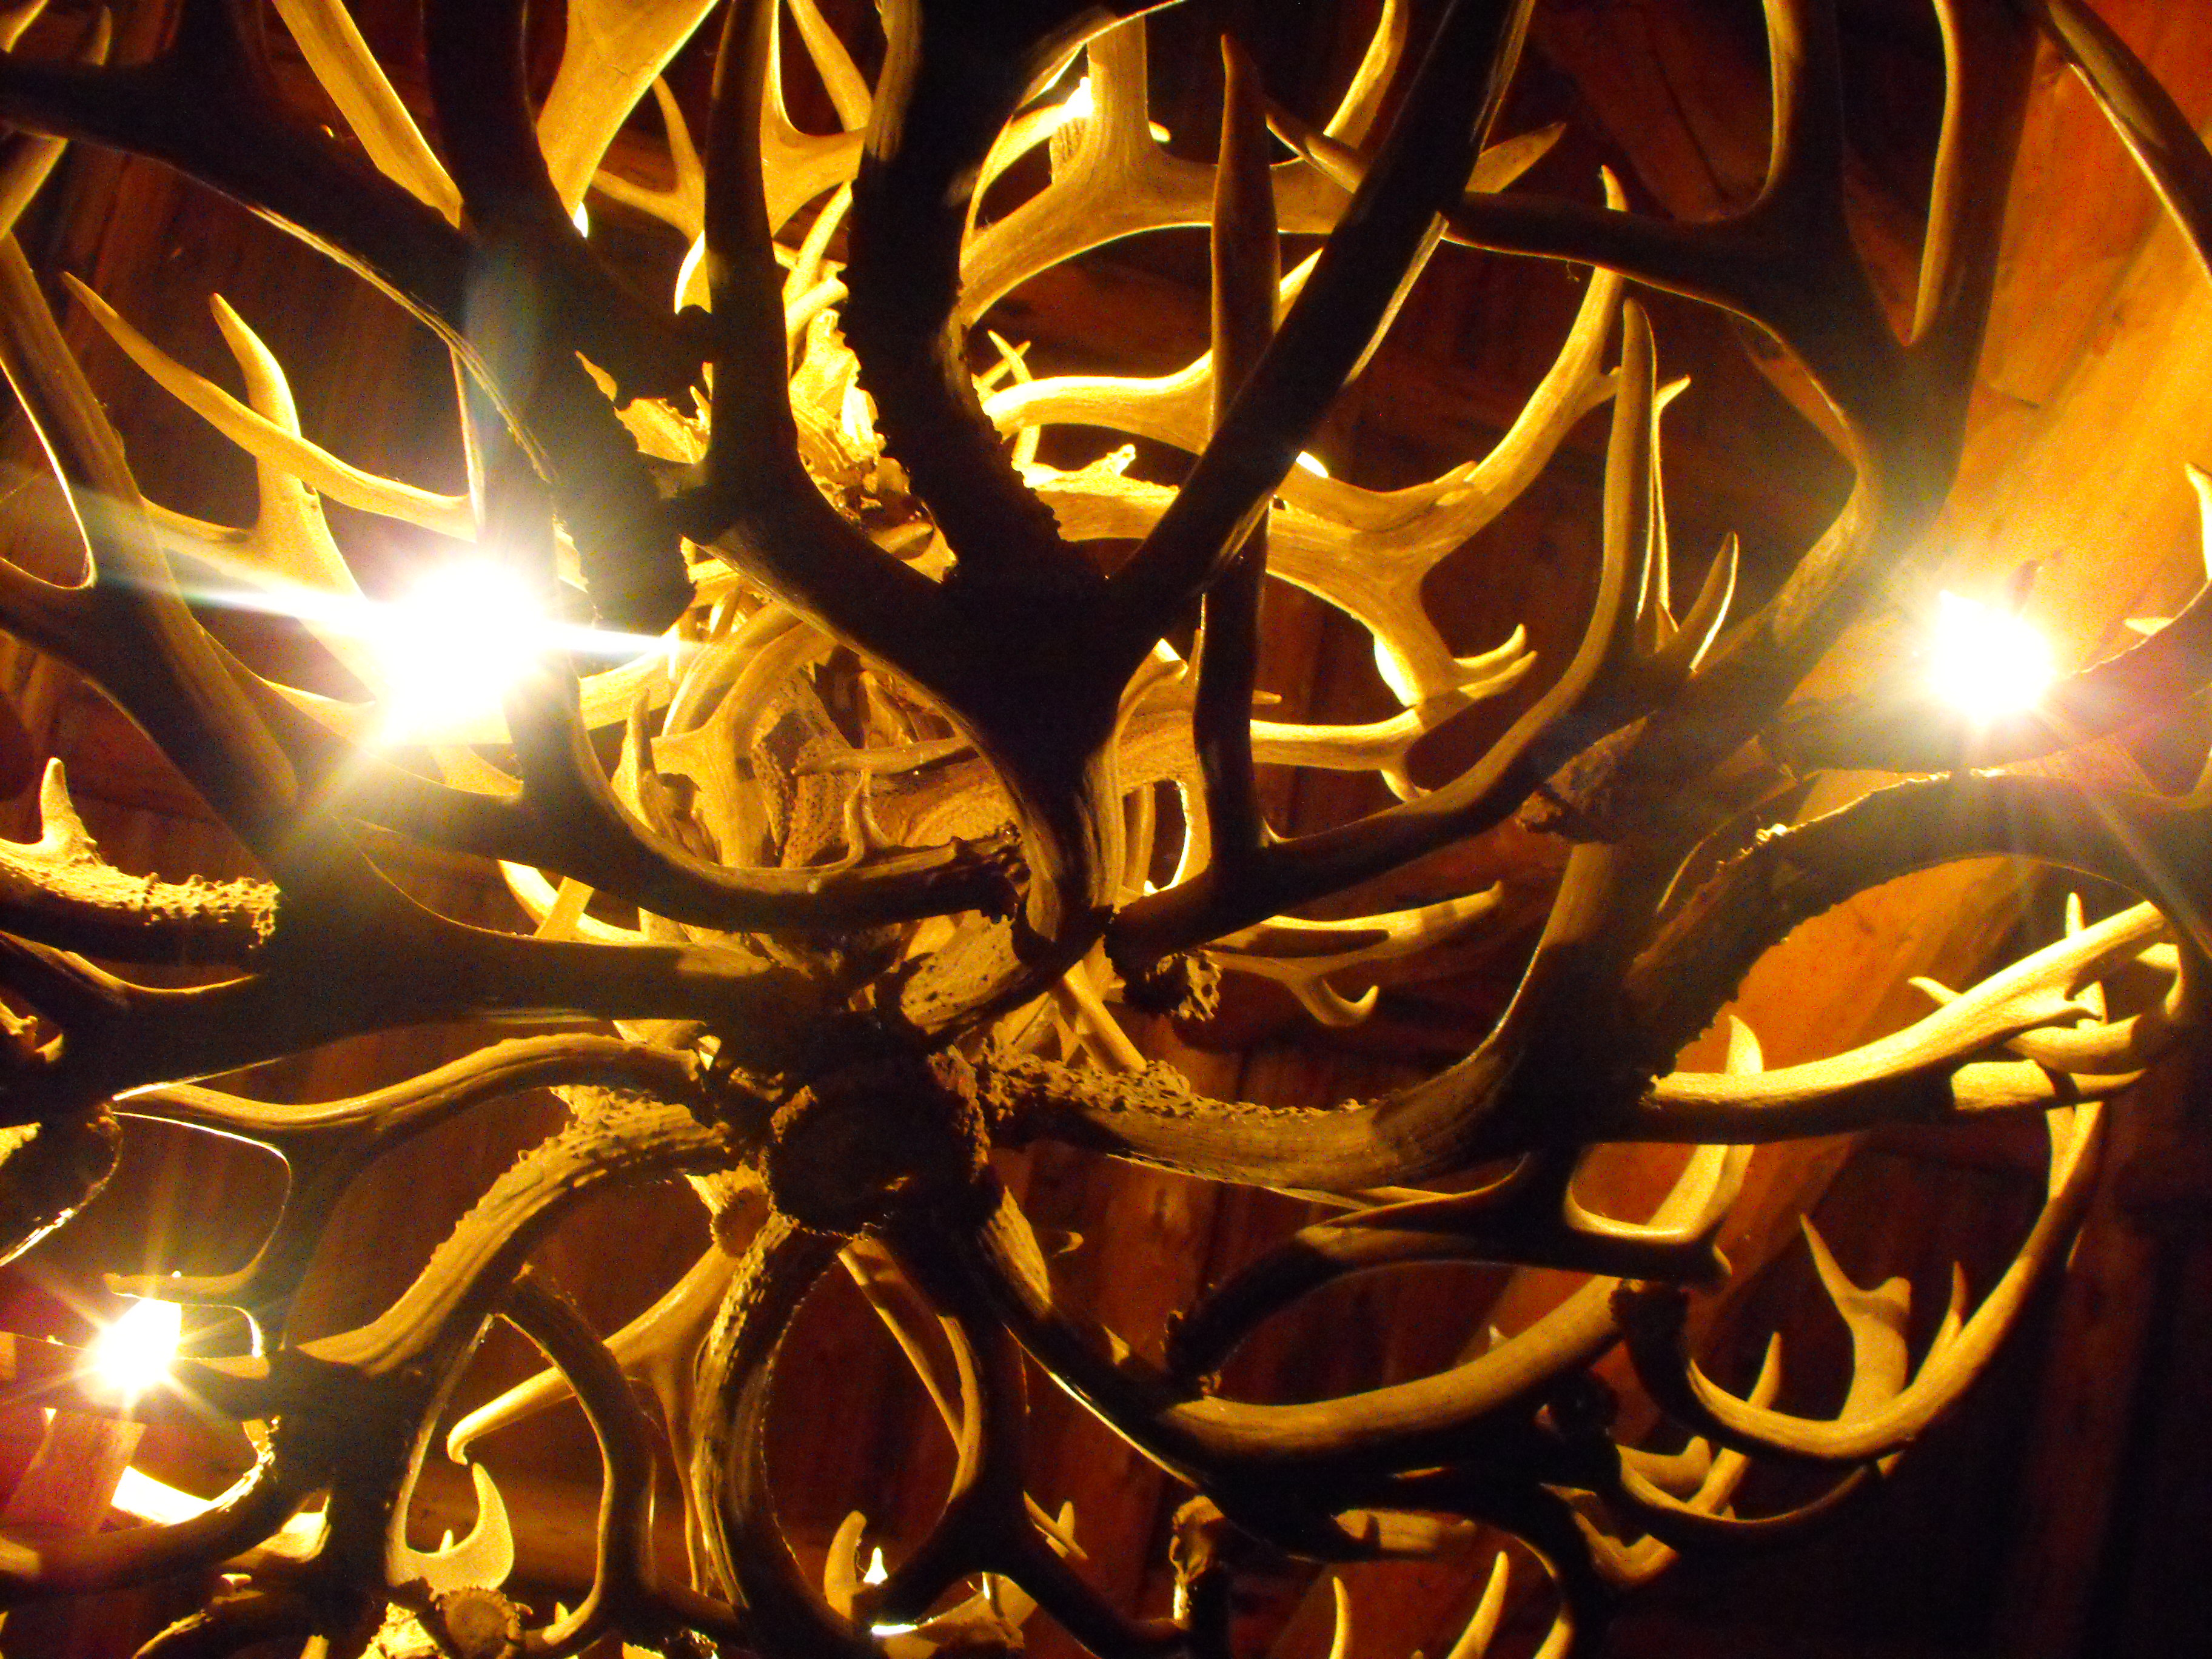 antler_chandelier_by_bluegrrl87-d49rudj.jpg